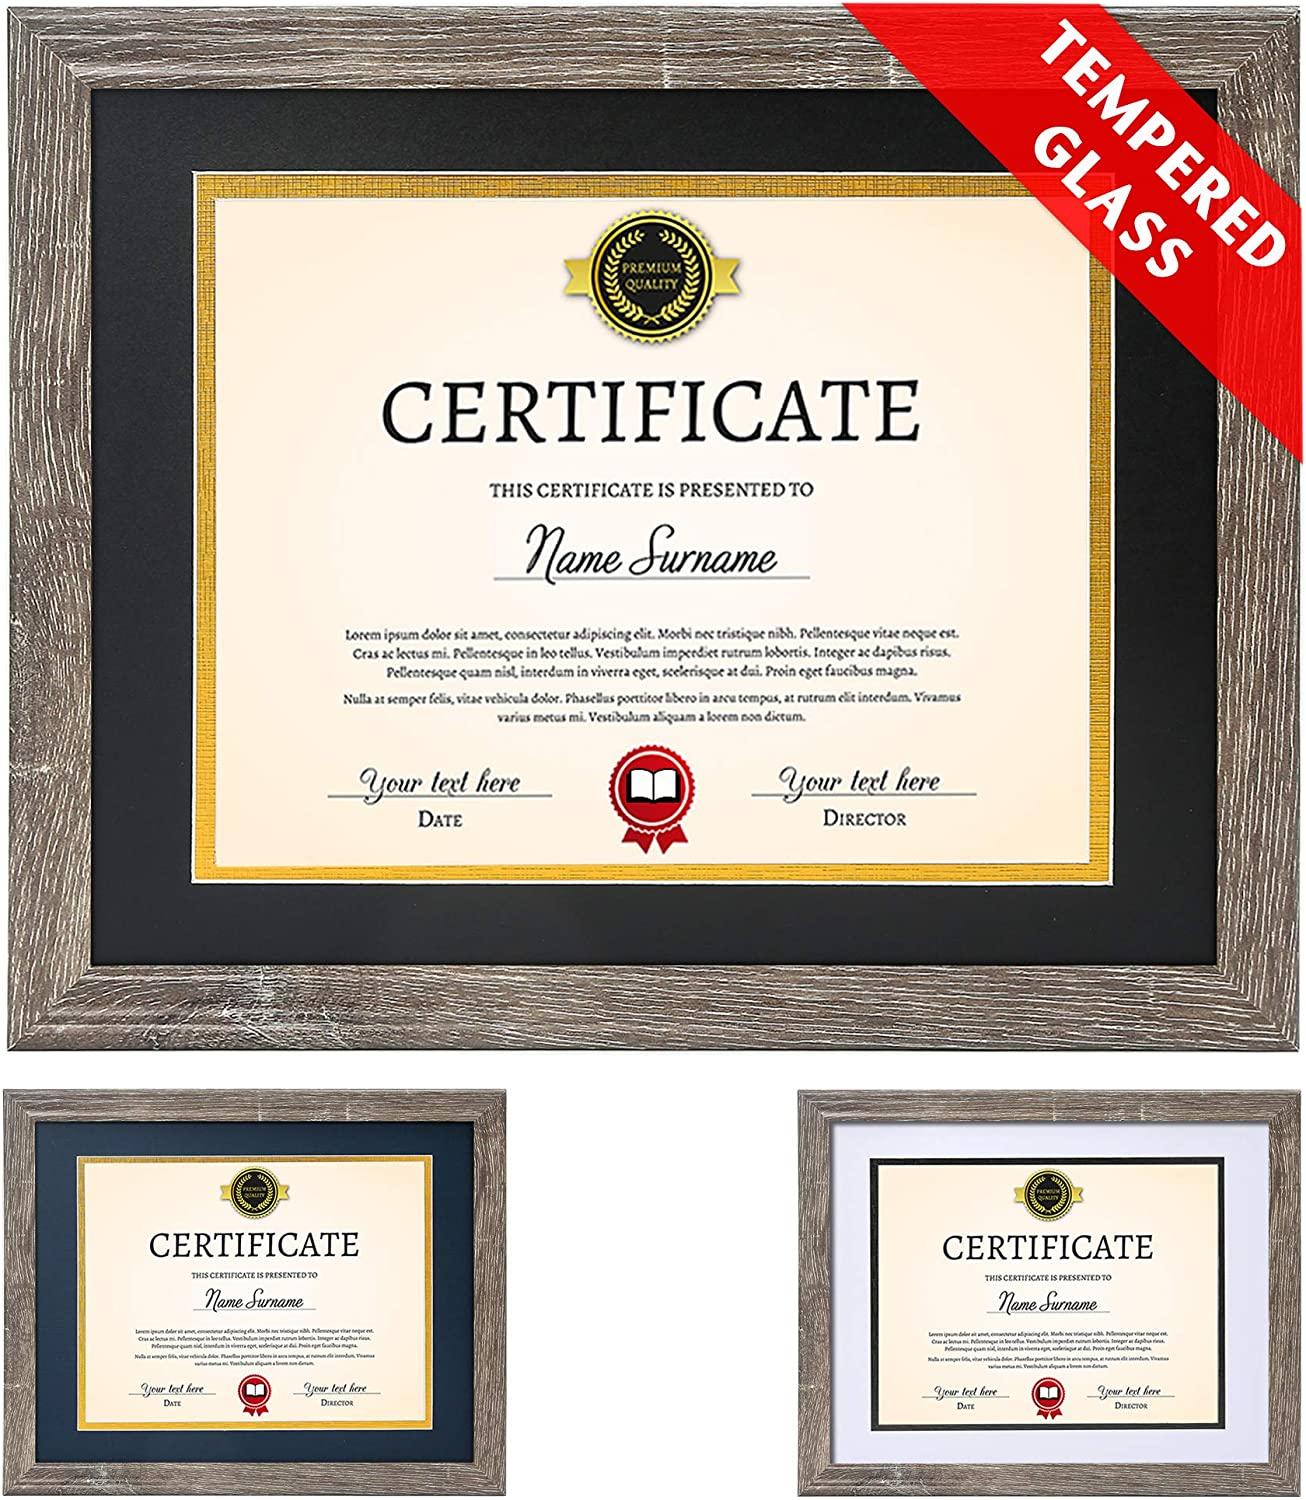 Diploma Frame Tempered Glass Safety and trust - Rare Document Mats Frames with 8.5x11